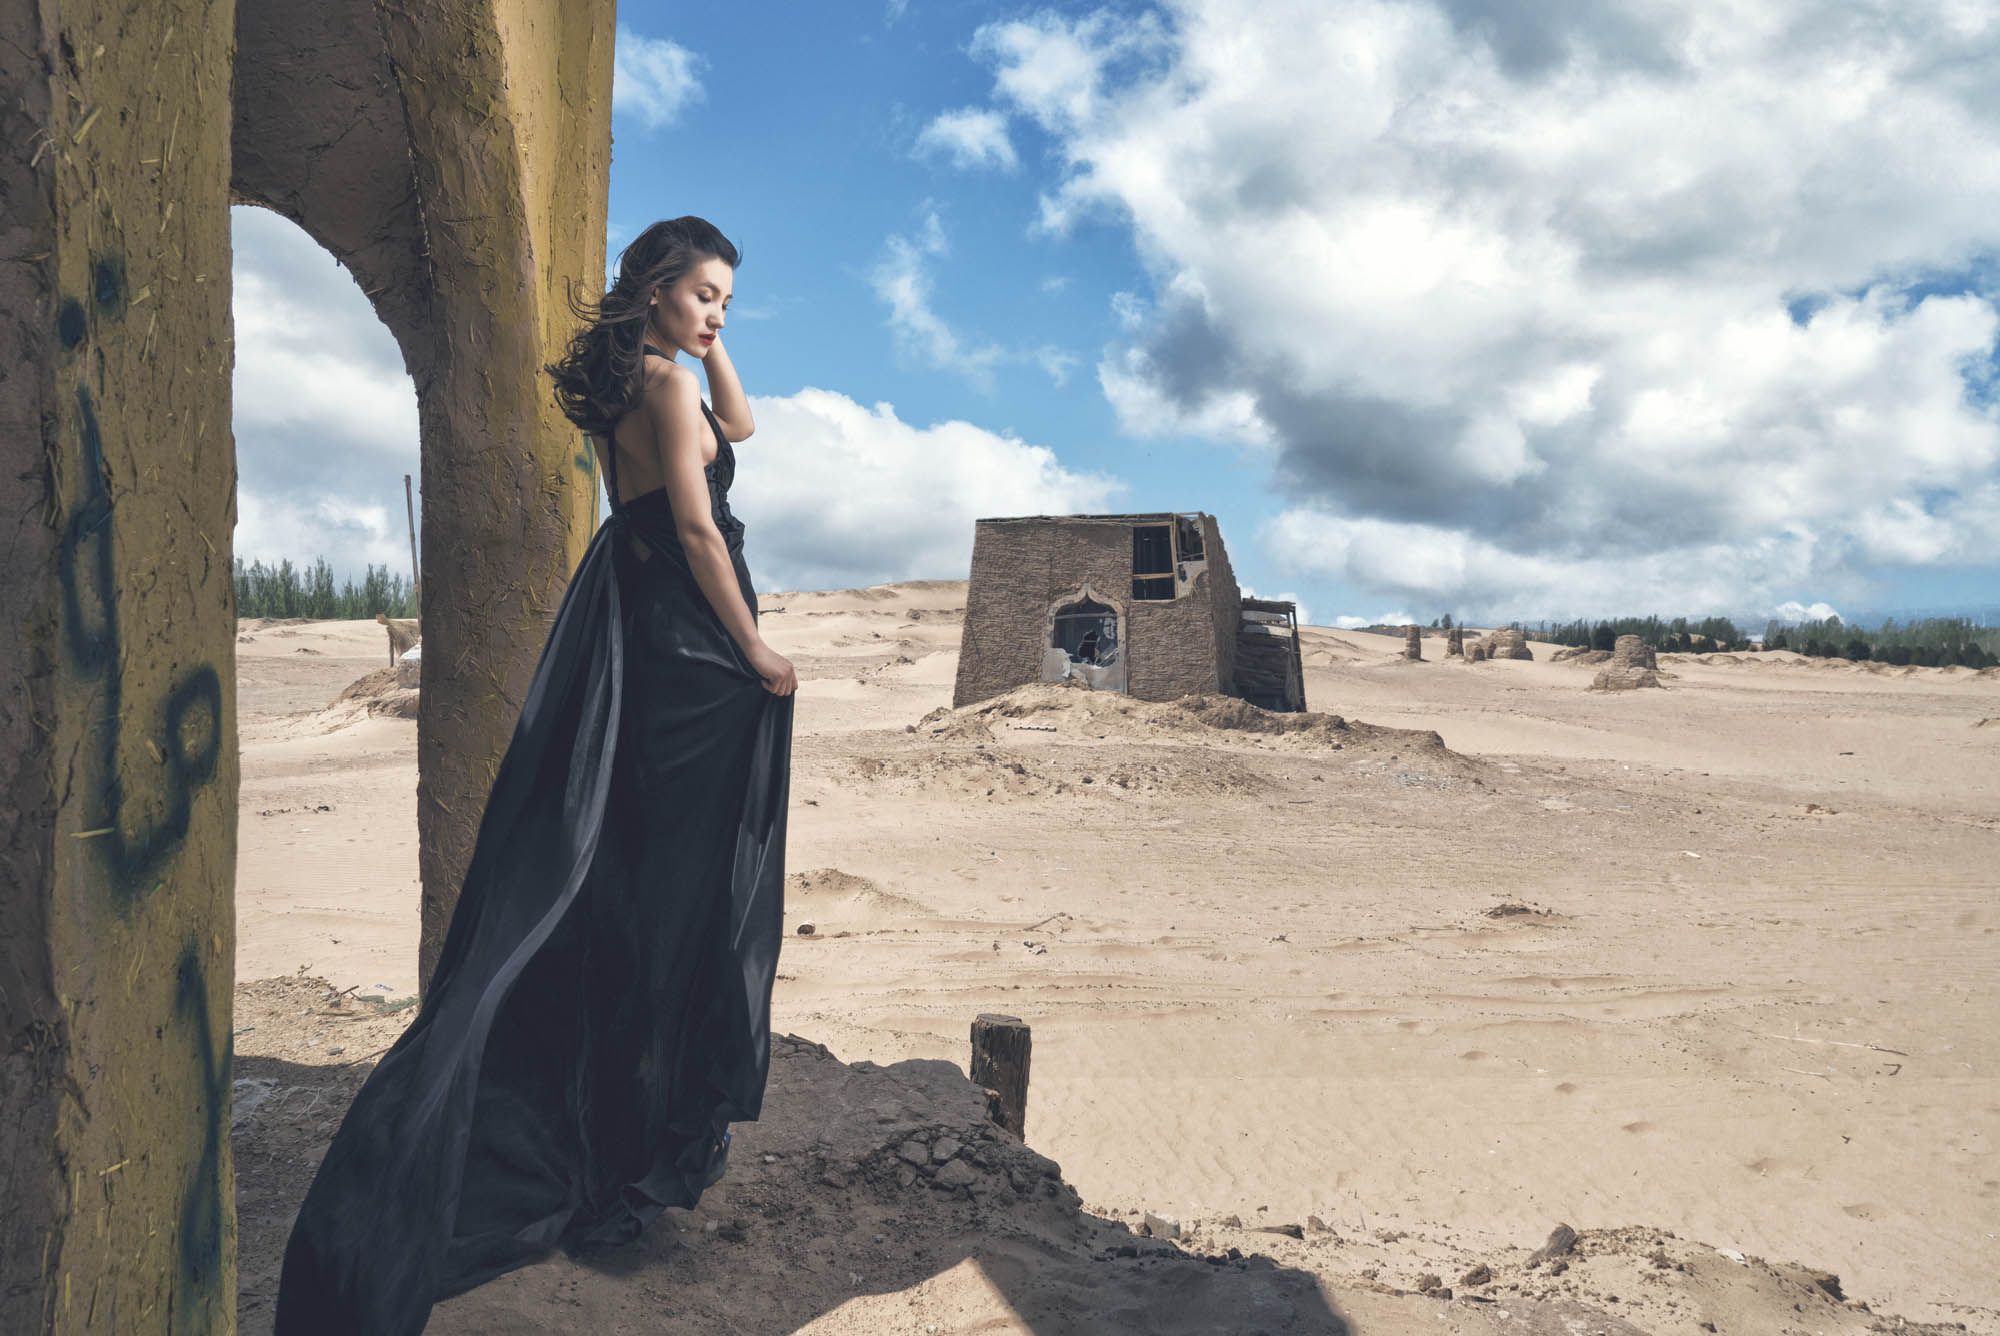 Bride in black gown standing in abandoned building in desert, by CM Leung